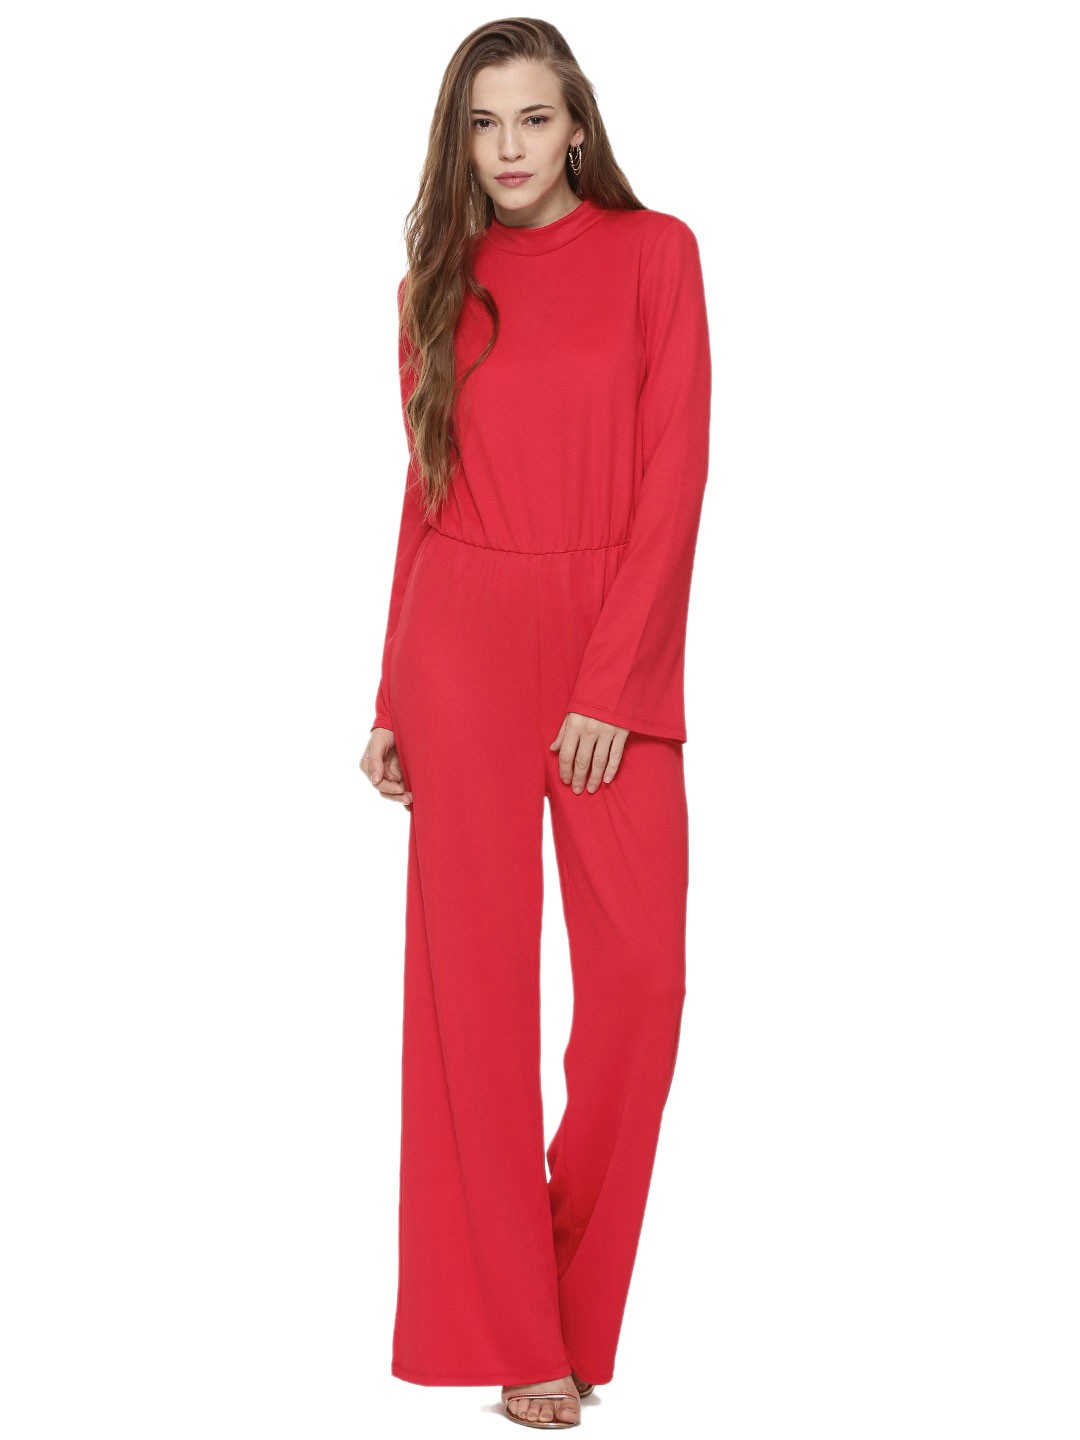 buy vero moda high neck jumpsuit for women women 39 s red multi jumpsuits online in india. Black Bedroom Furniture Sets. Home Design Ideas